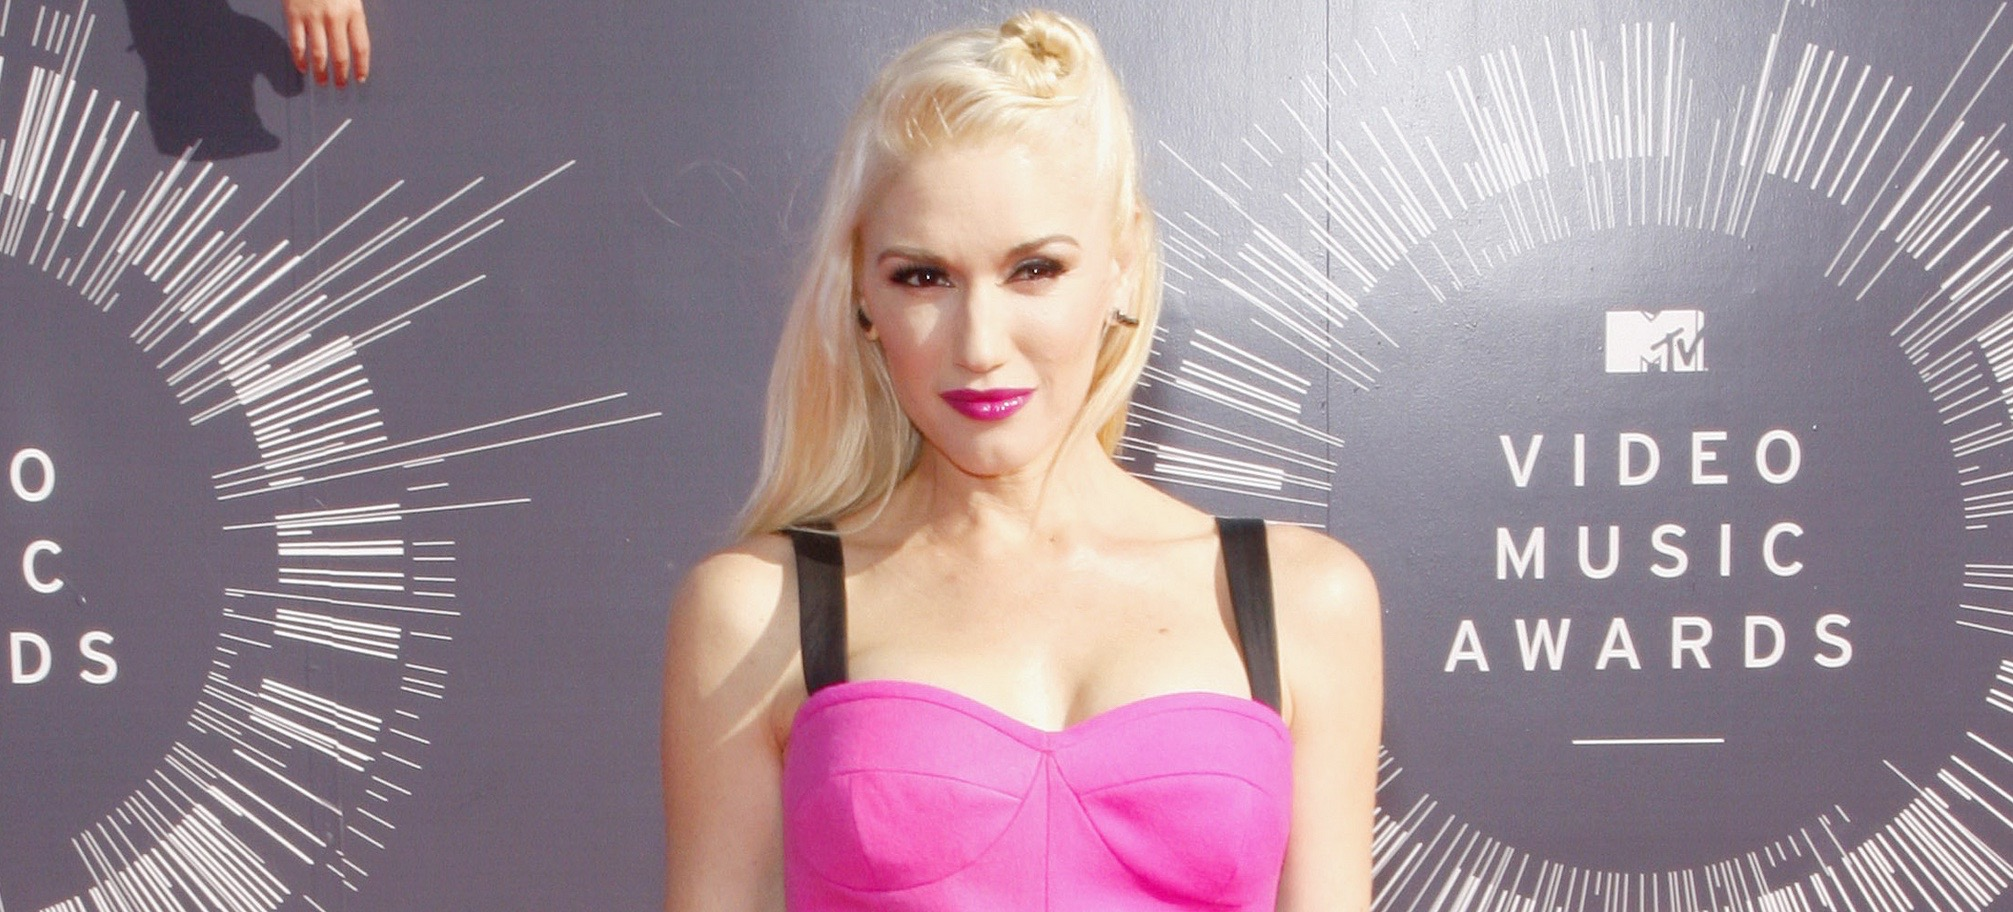 Urban Decay's First-Ever Celeb Collaborator: Gwen Stefani